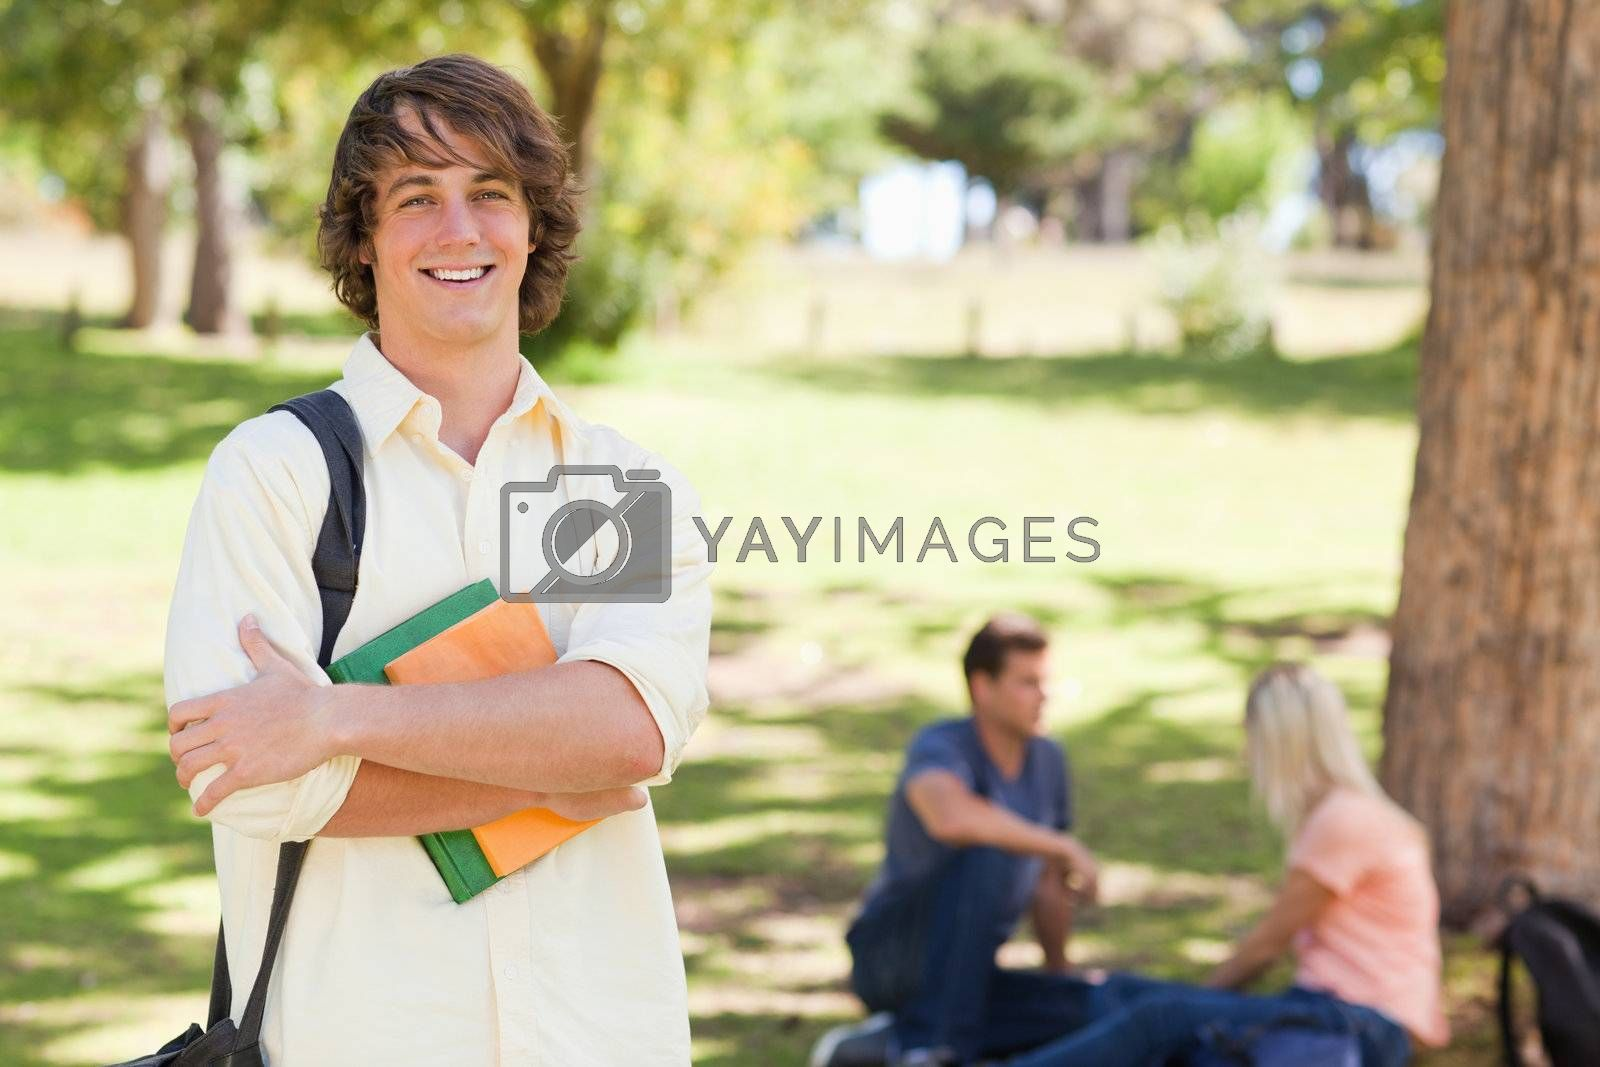 Young man posing with textbook in a park with friends in background